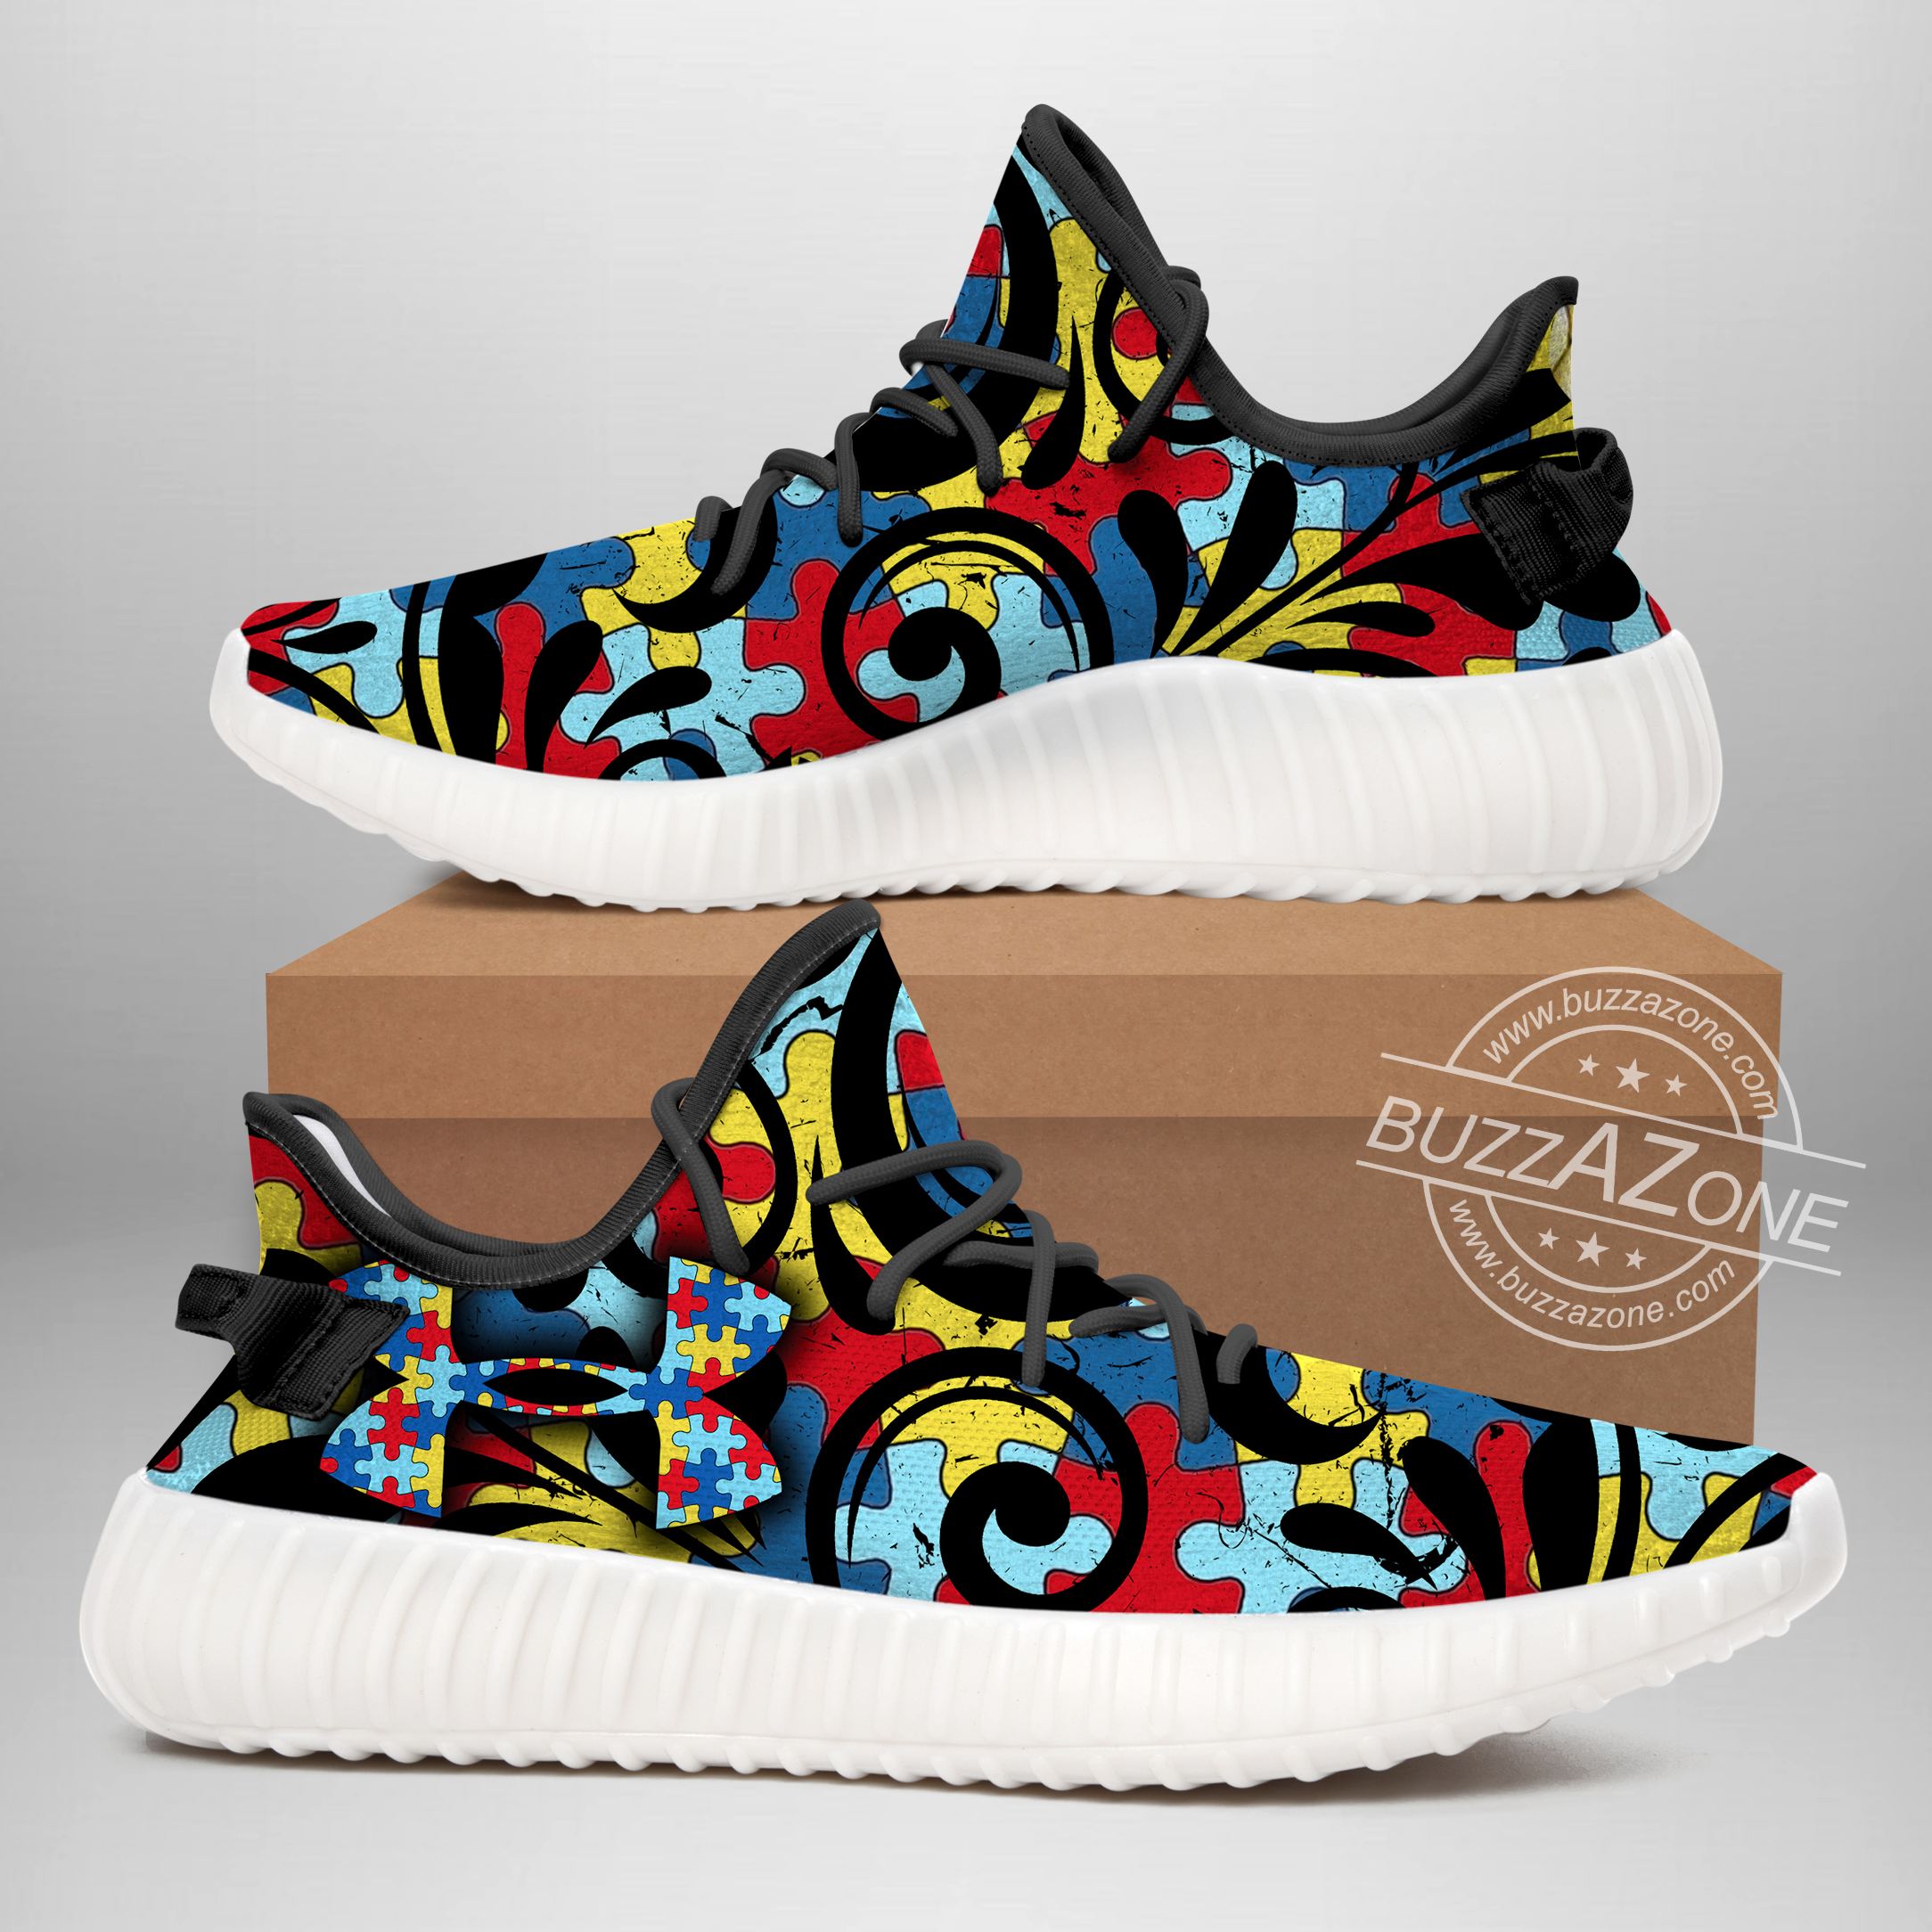 Under armour autism awareness yeezy sneakers 2